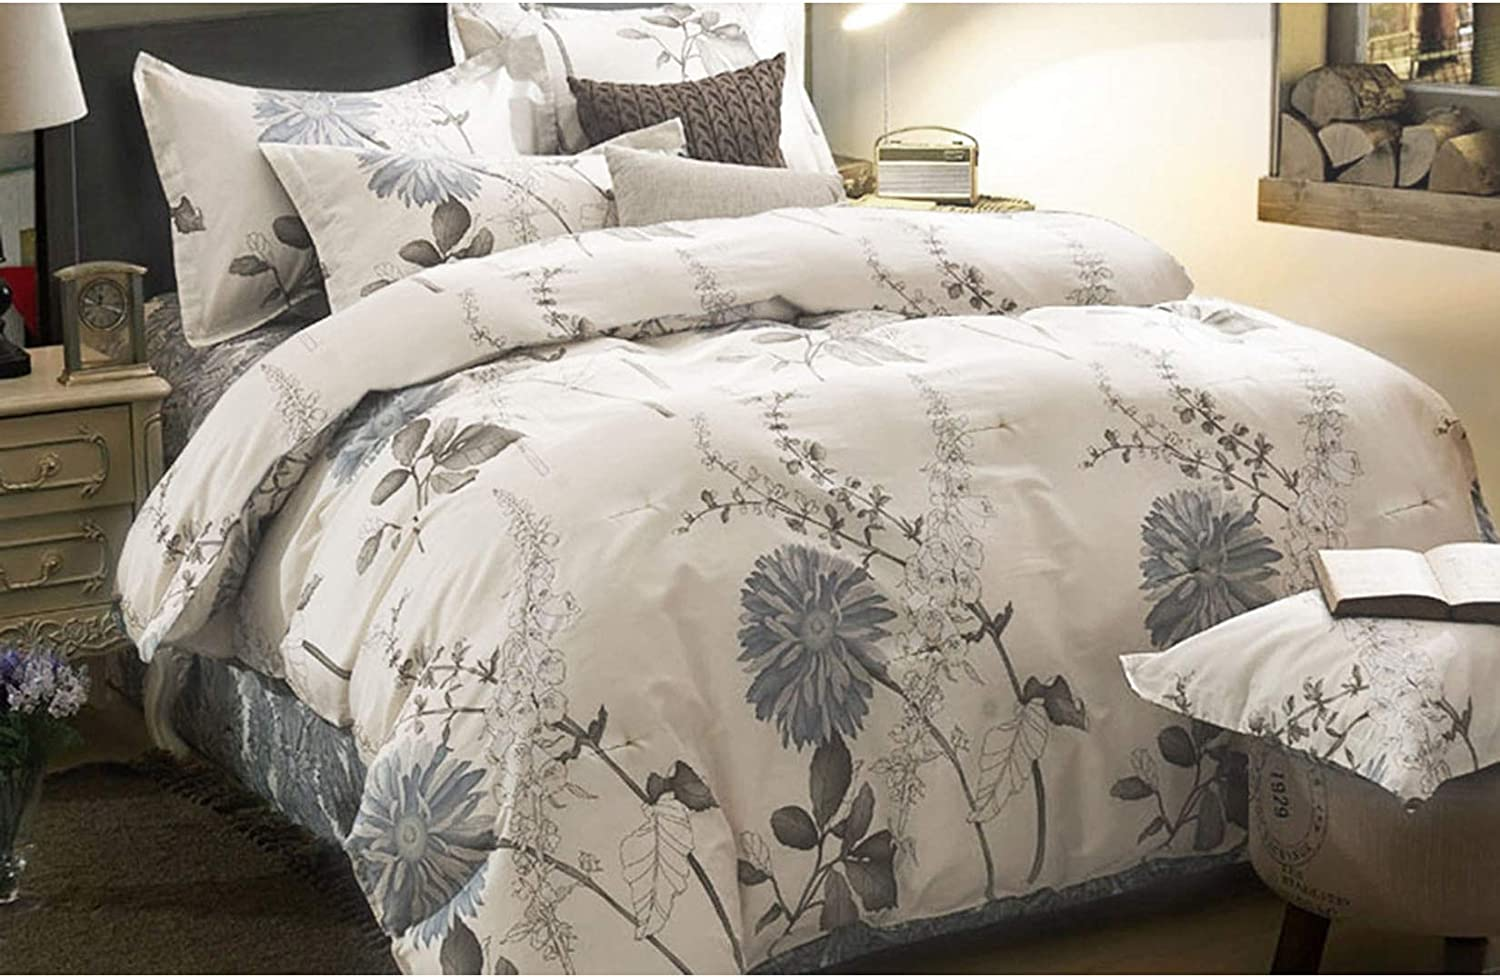 Wake In Cloud - Floral Comforter Set, Botanical Flowers Pattern Printed, 100% Cotton Fabric with Soft Microfiber Inner Fill Bedding (3pcs, California King Size)